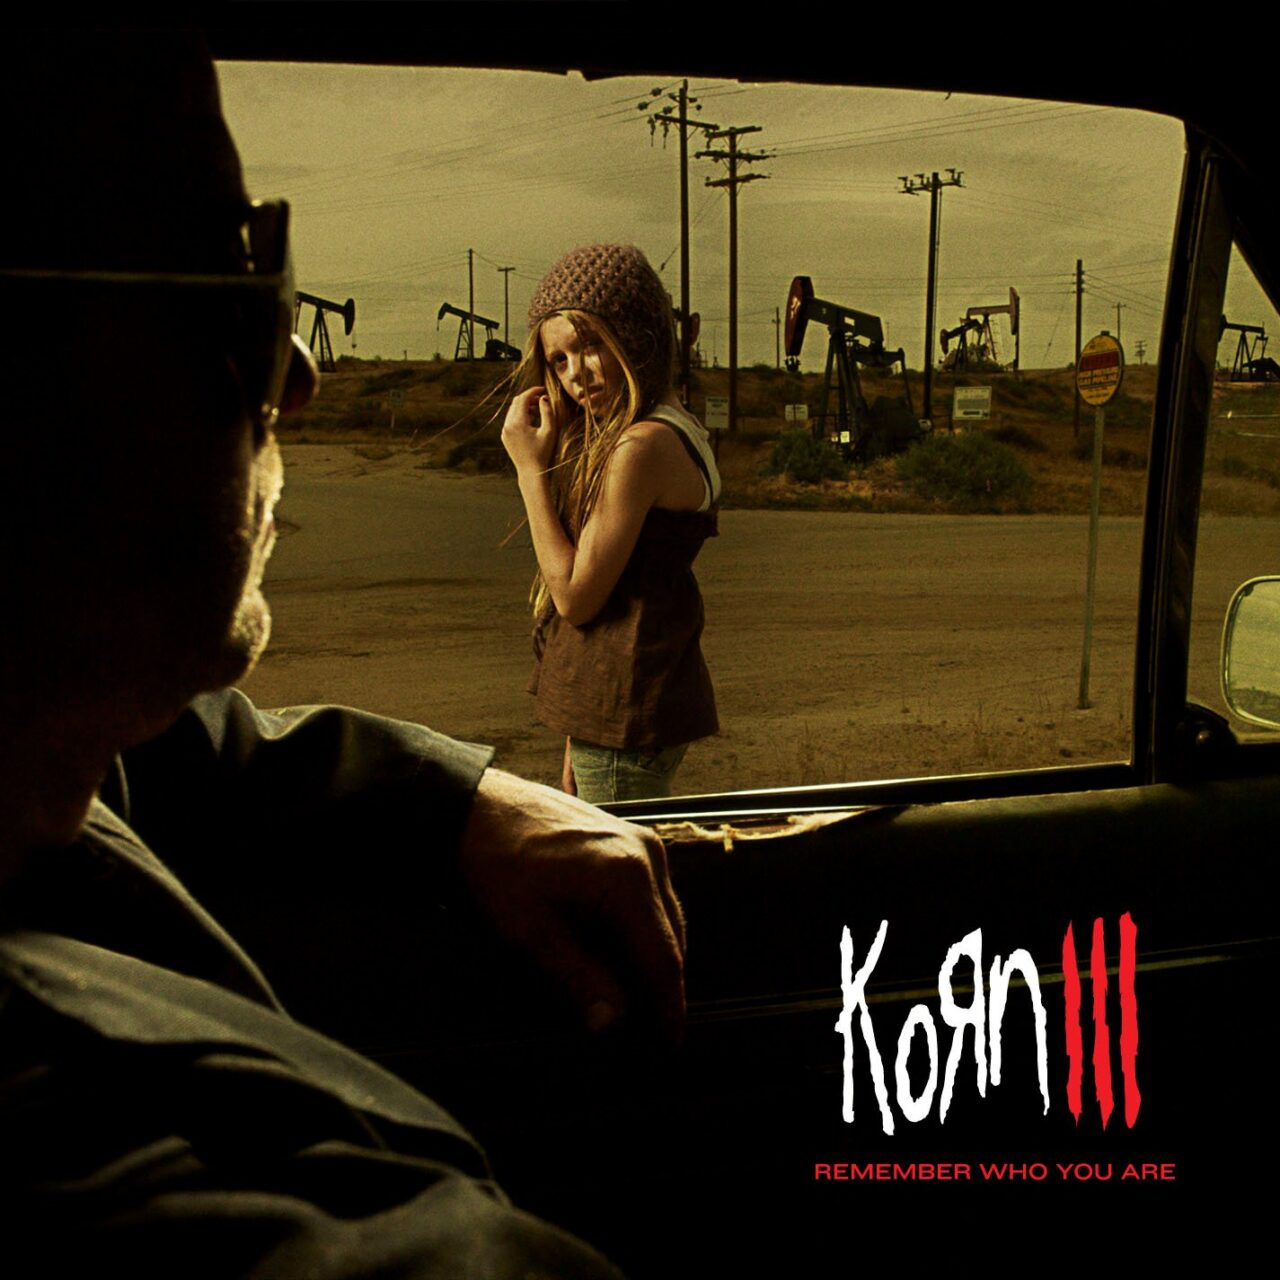 Korn - Korn III: Remember Who You Are CD